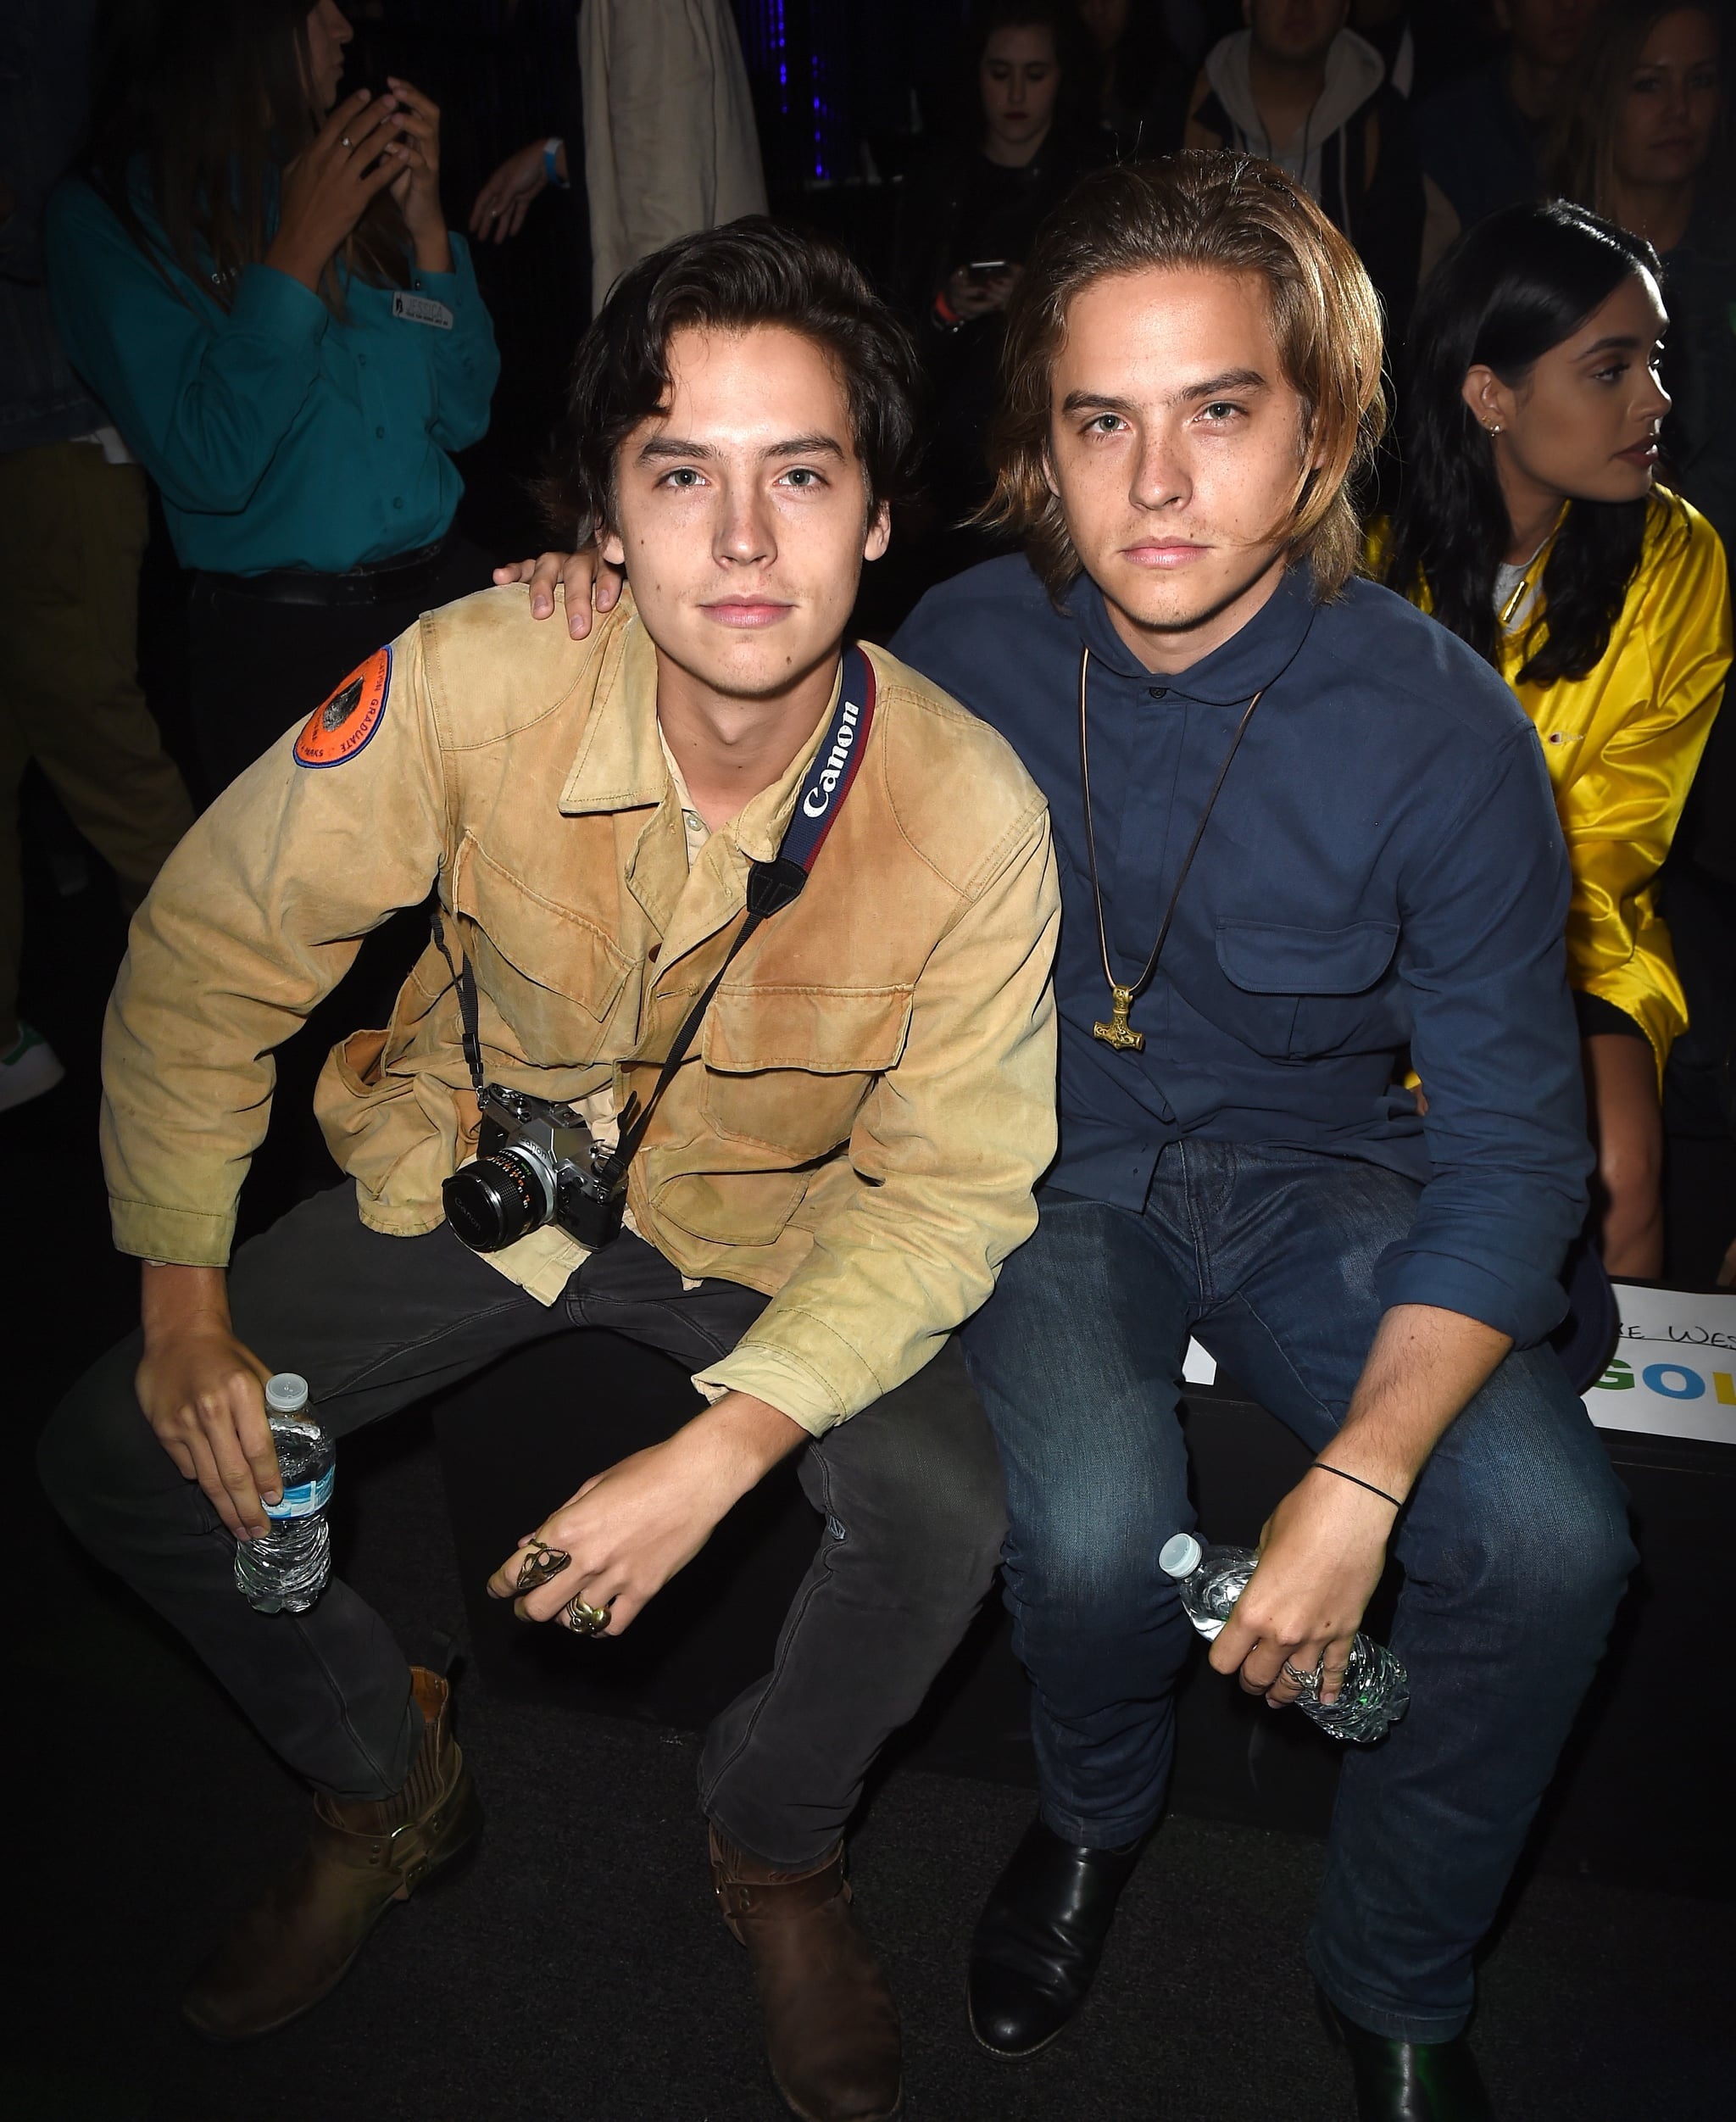 Dylan and Cole Sprouse - Wikipedia